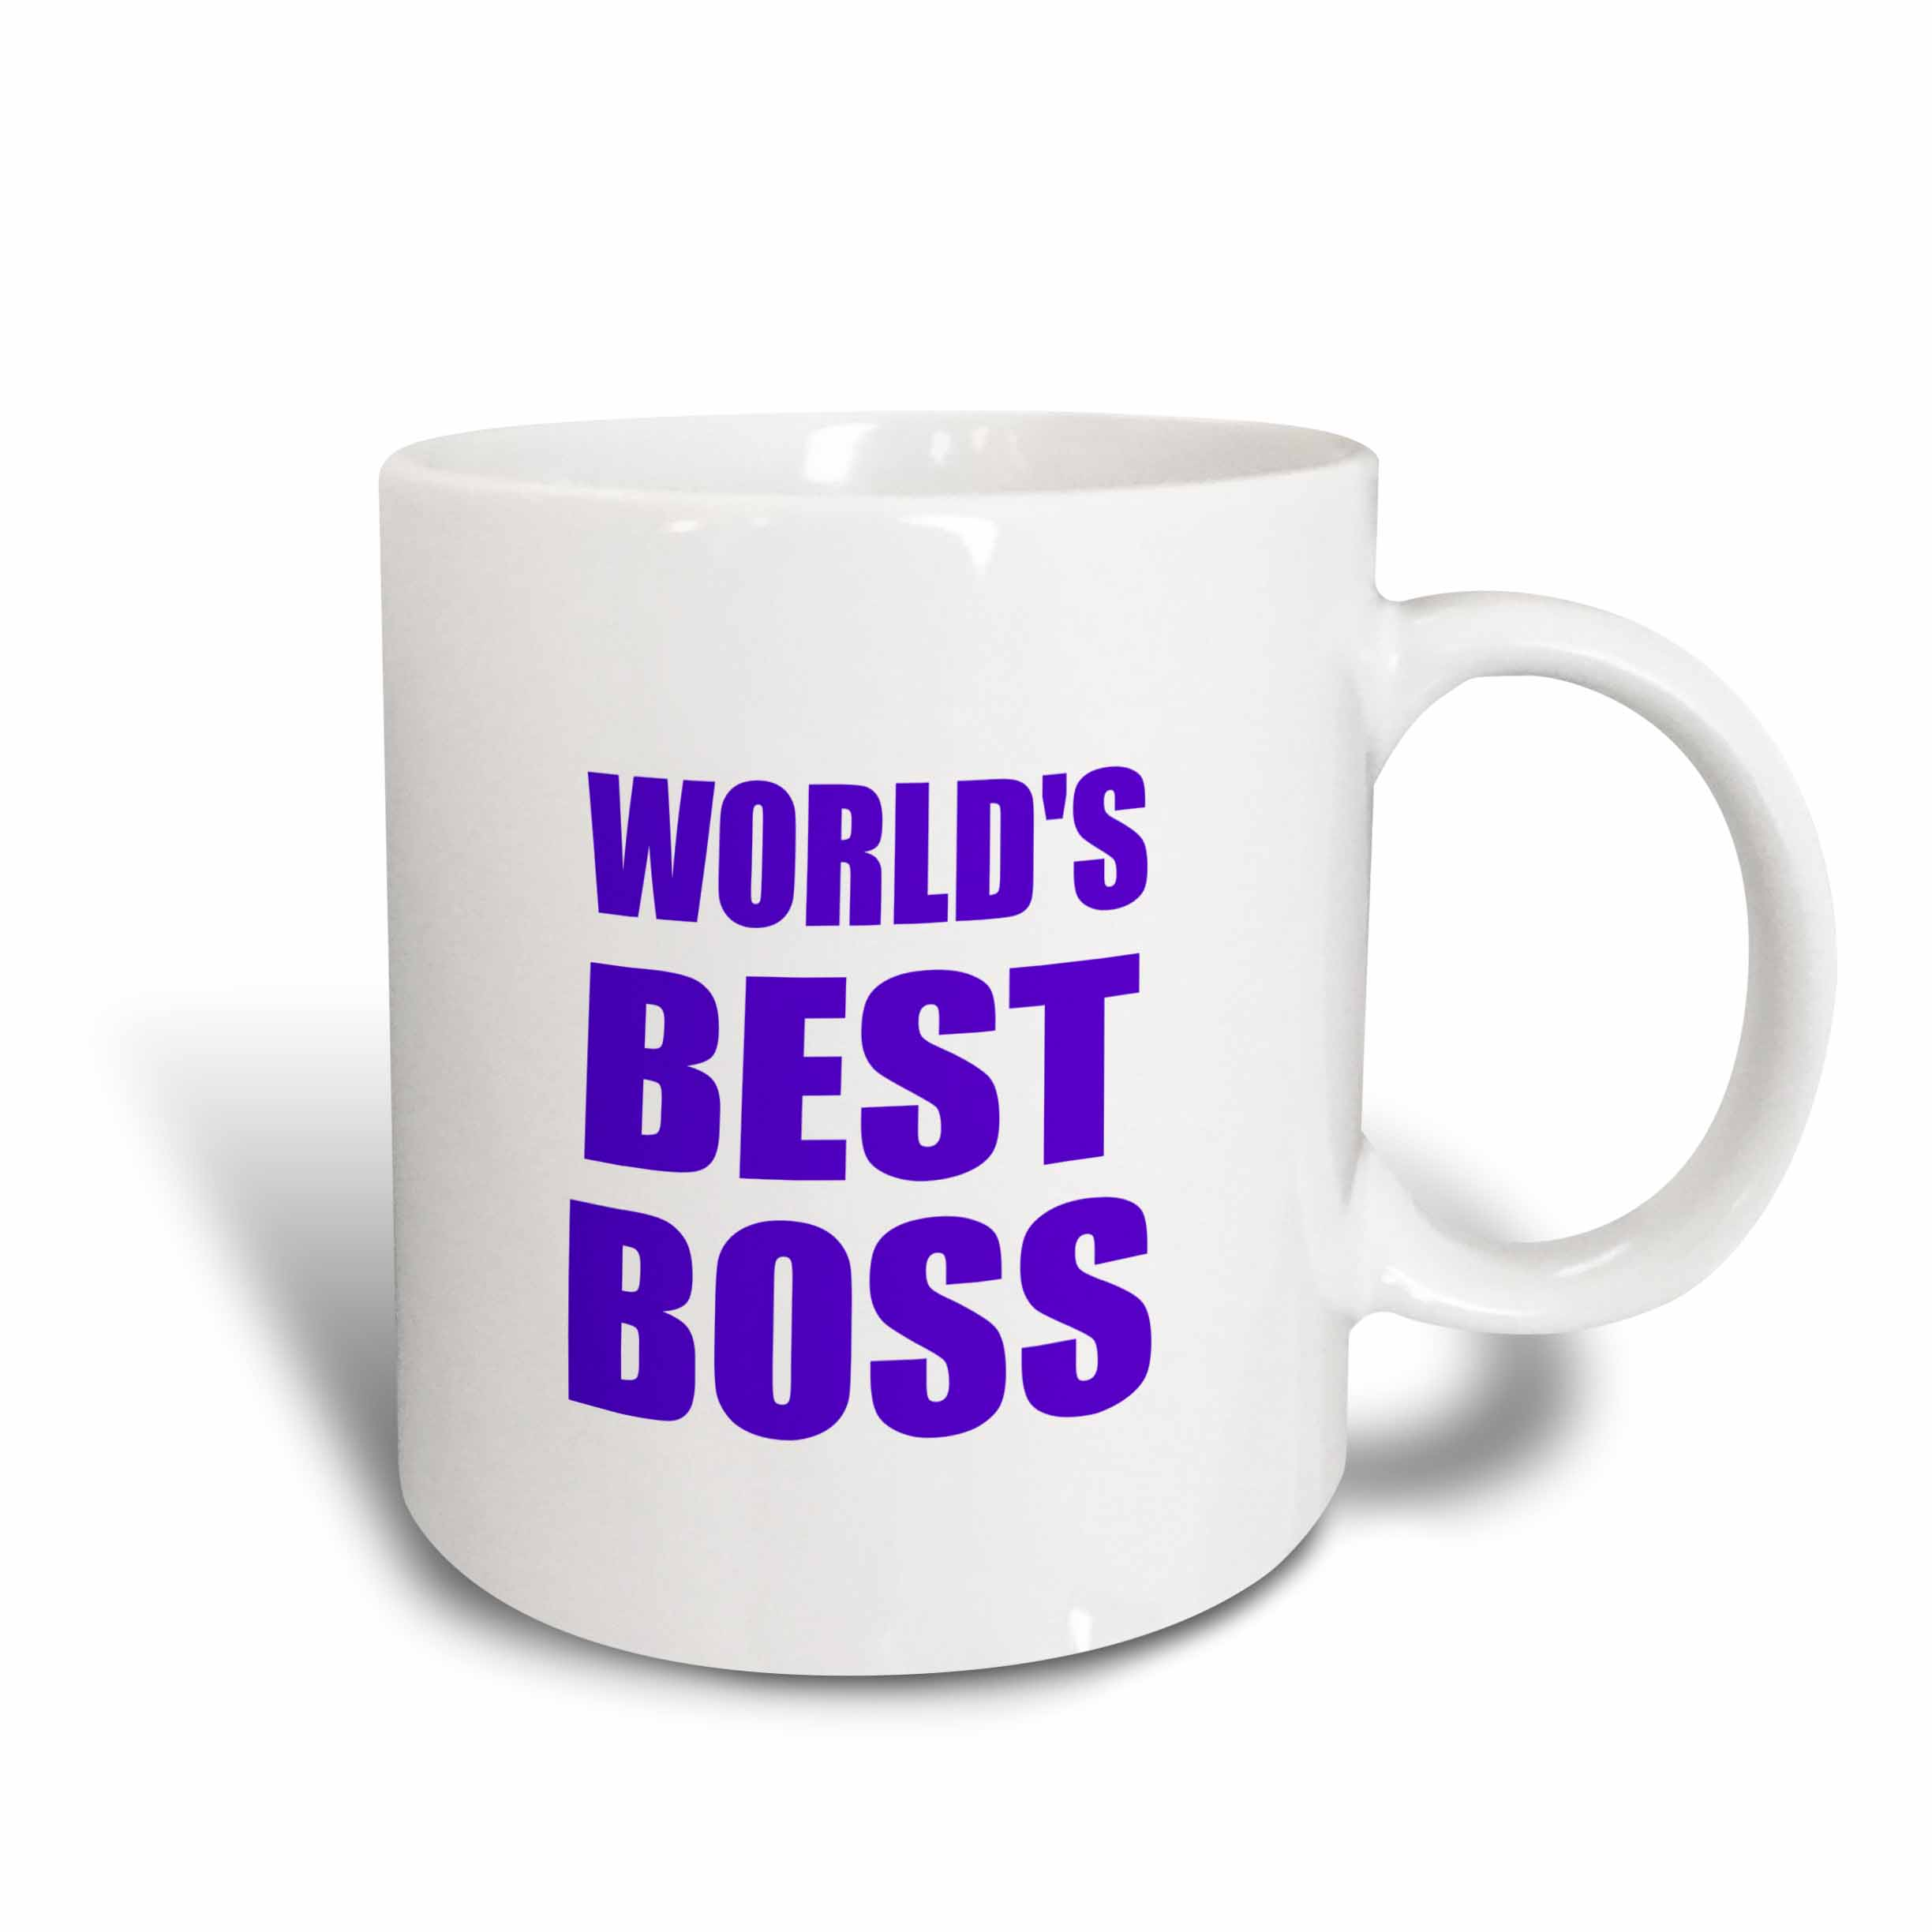 3dRose Worlds Best Boss - purple text - great design for the greatest boss, Ceramic Mug, 11-ounce